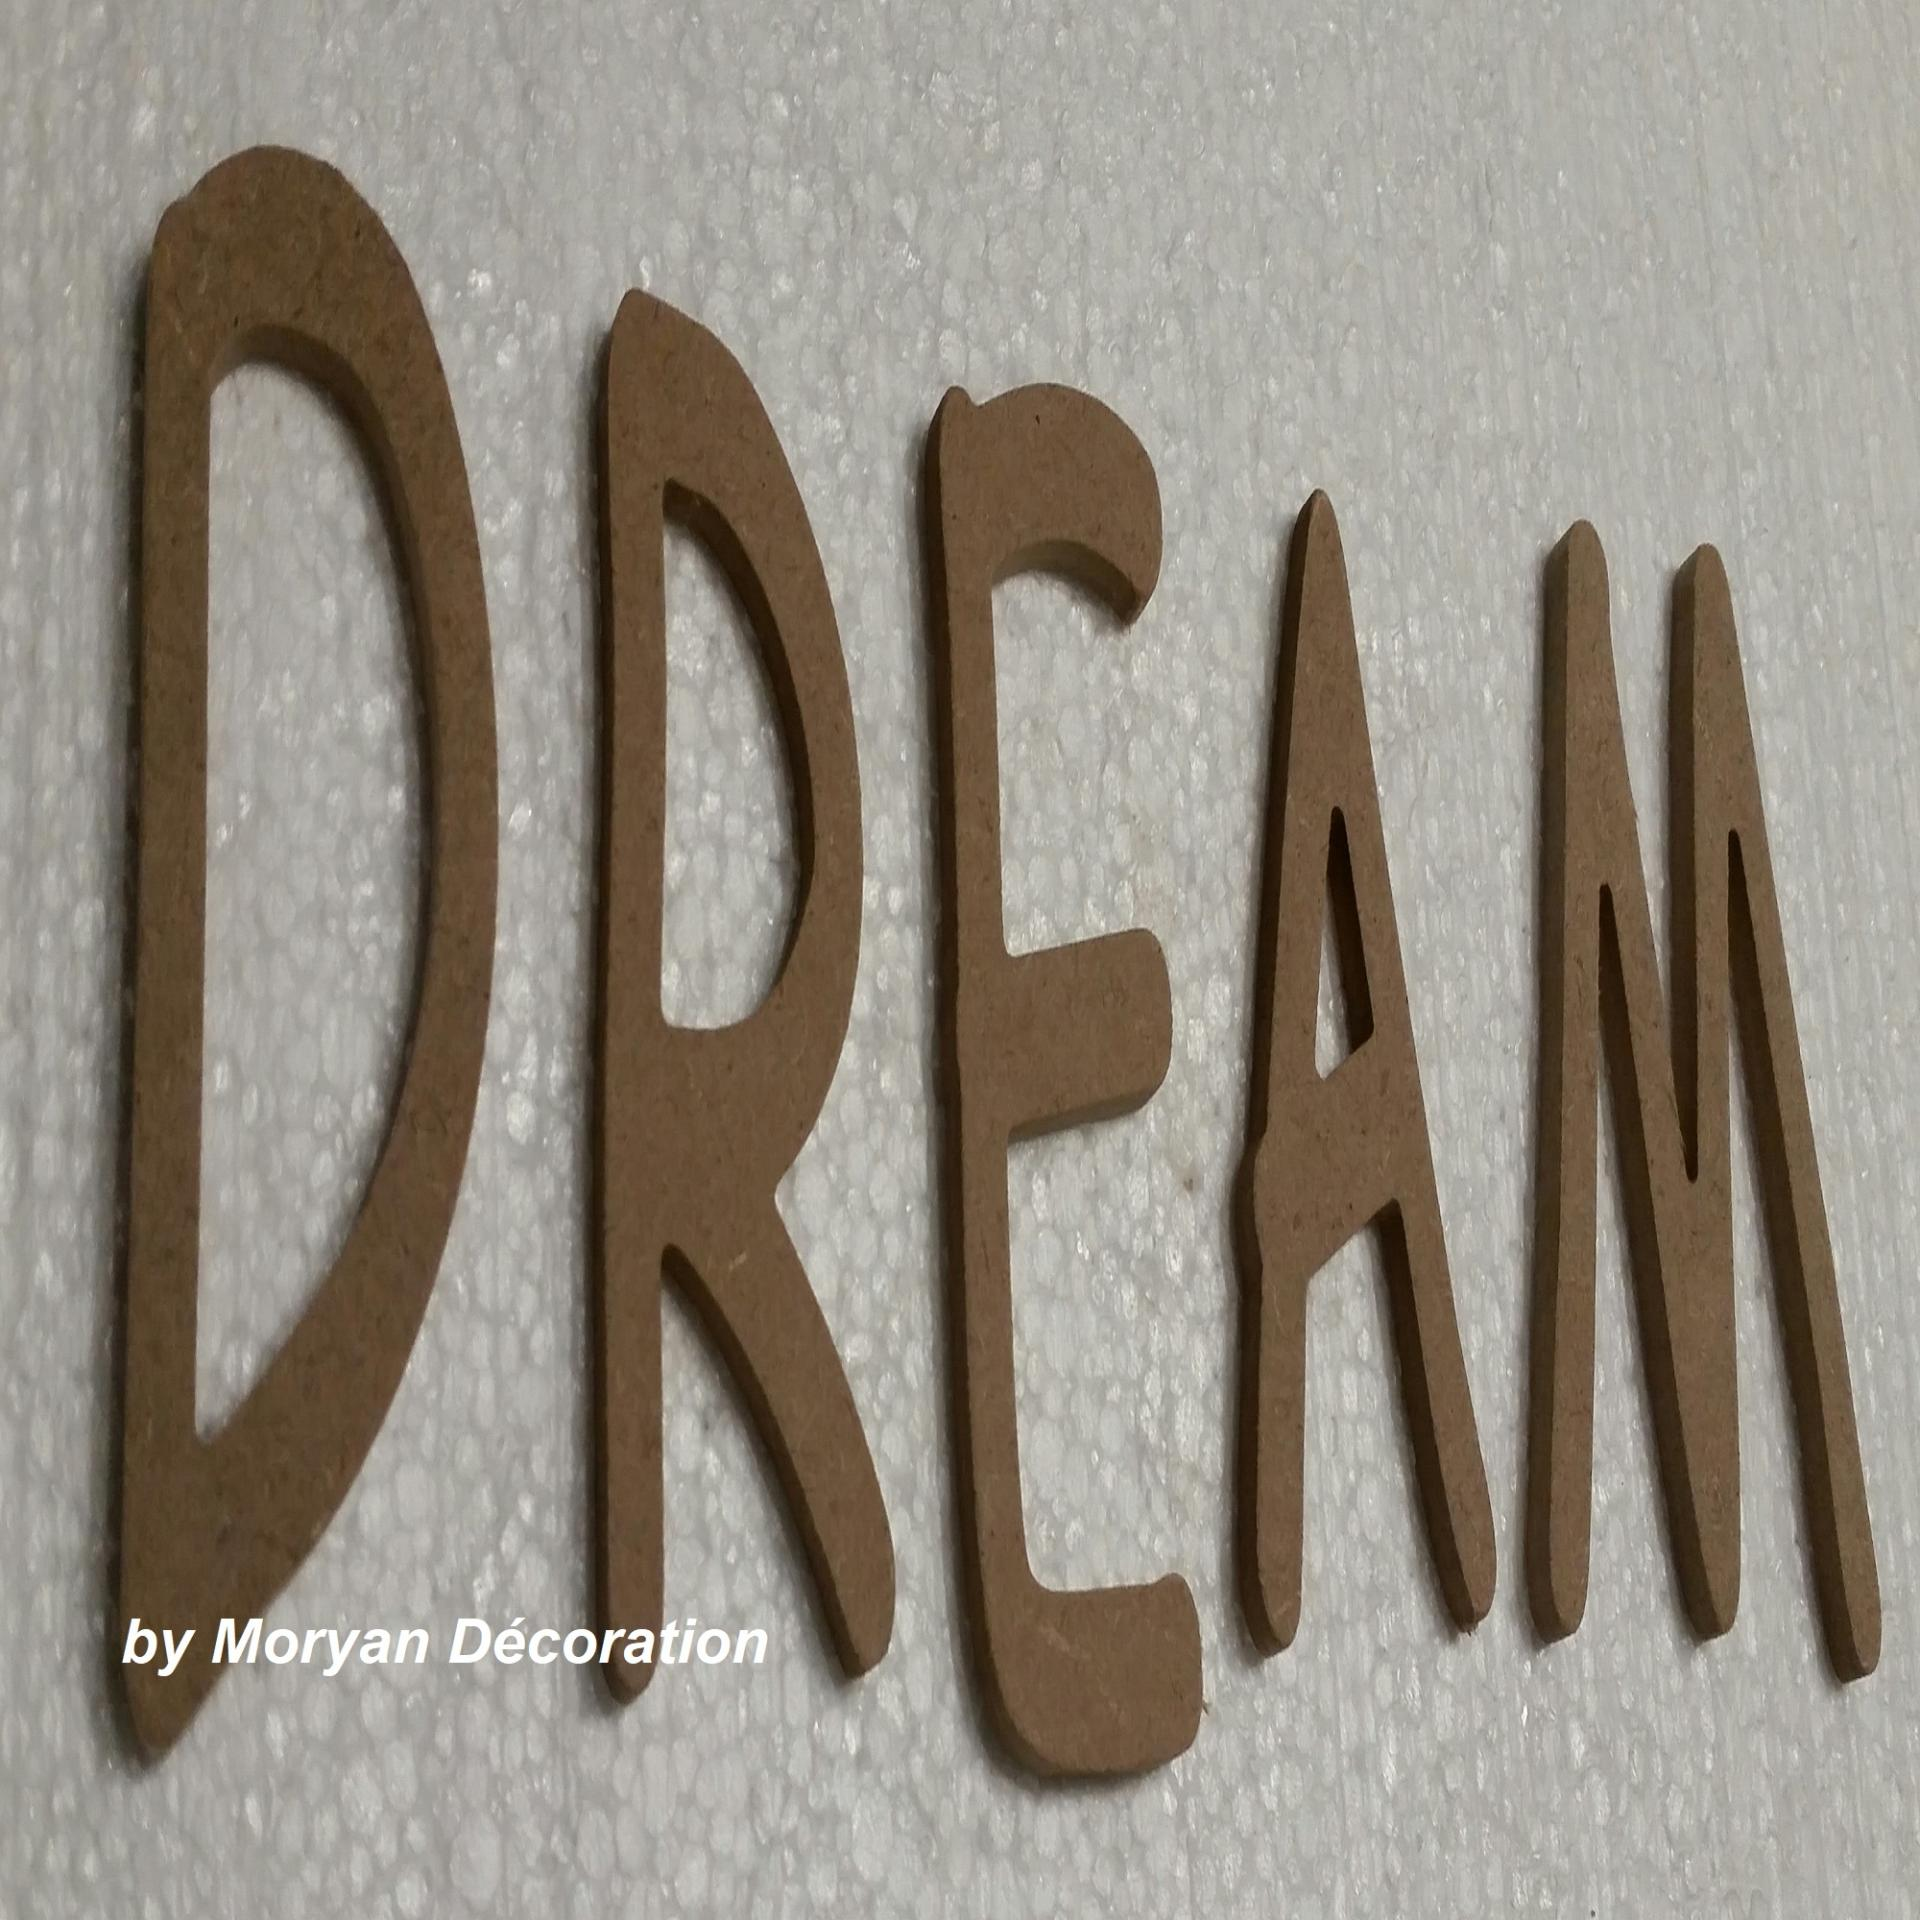 Lettre decorative dream 60 cm